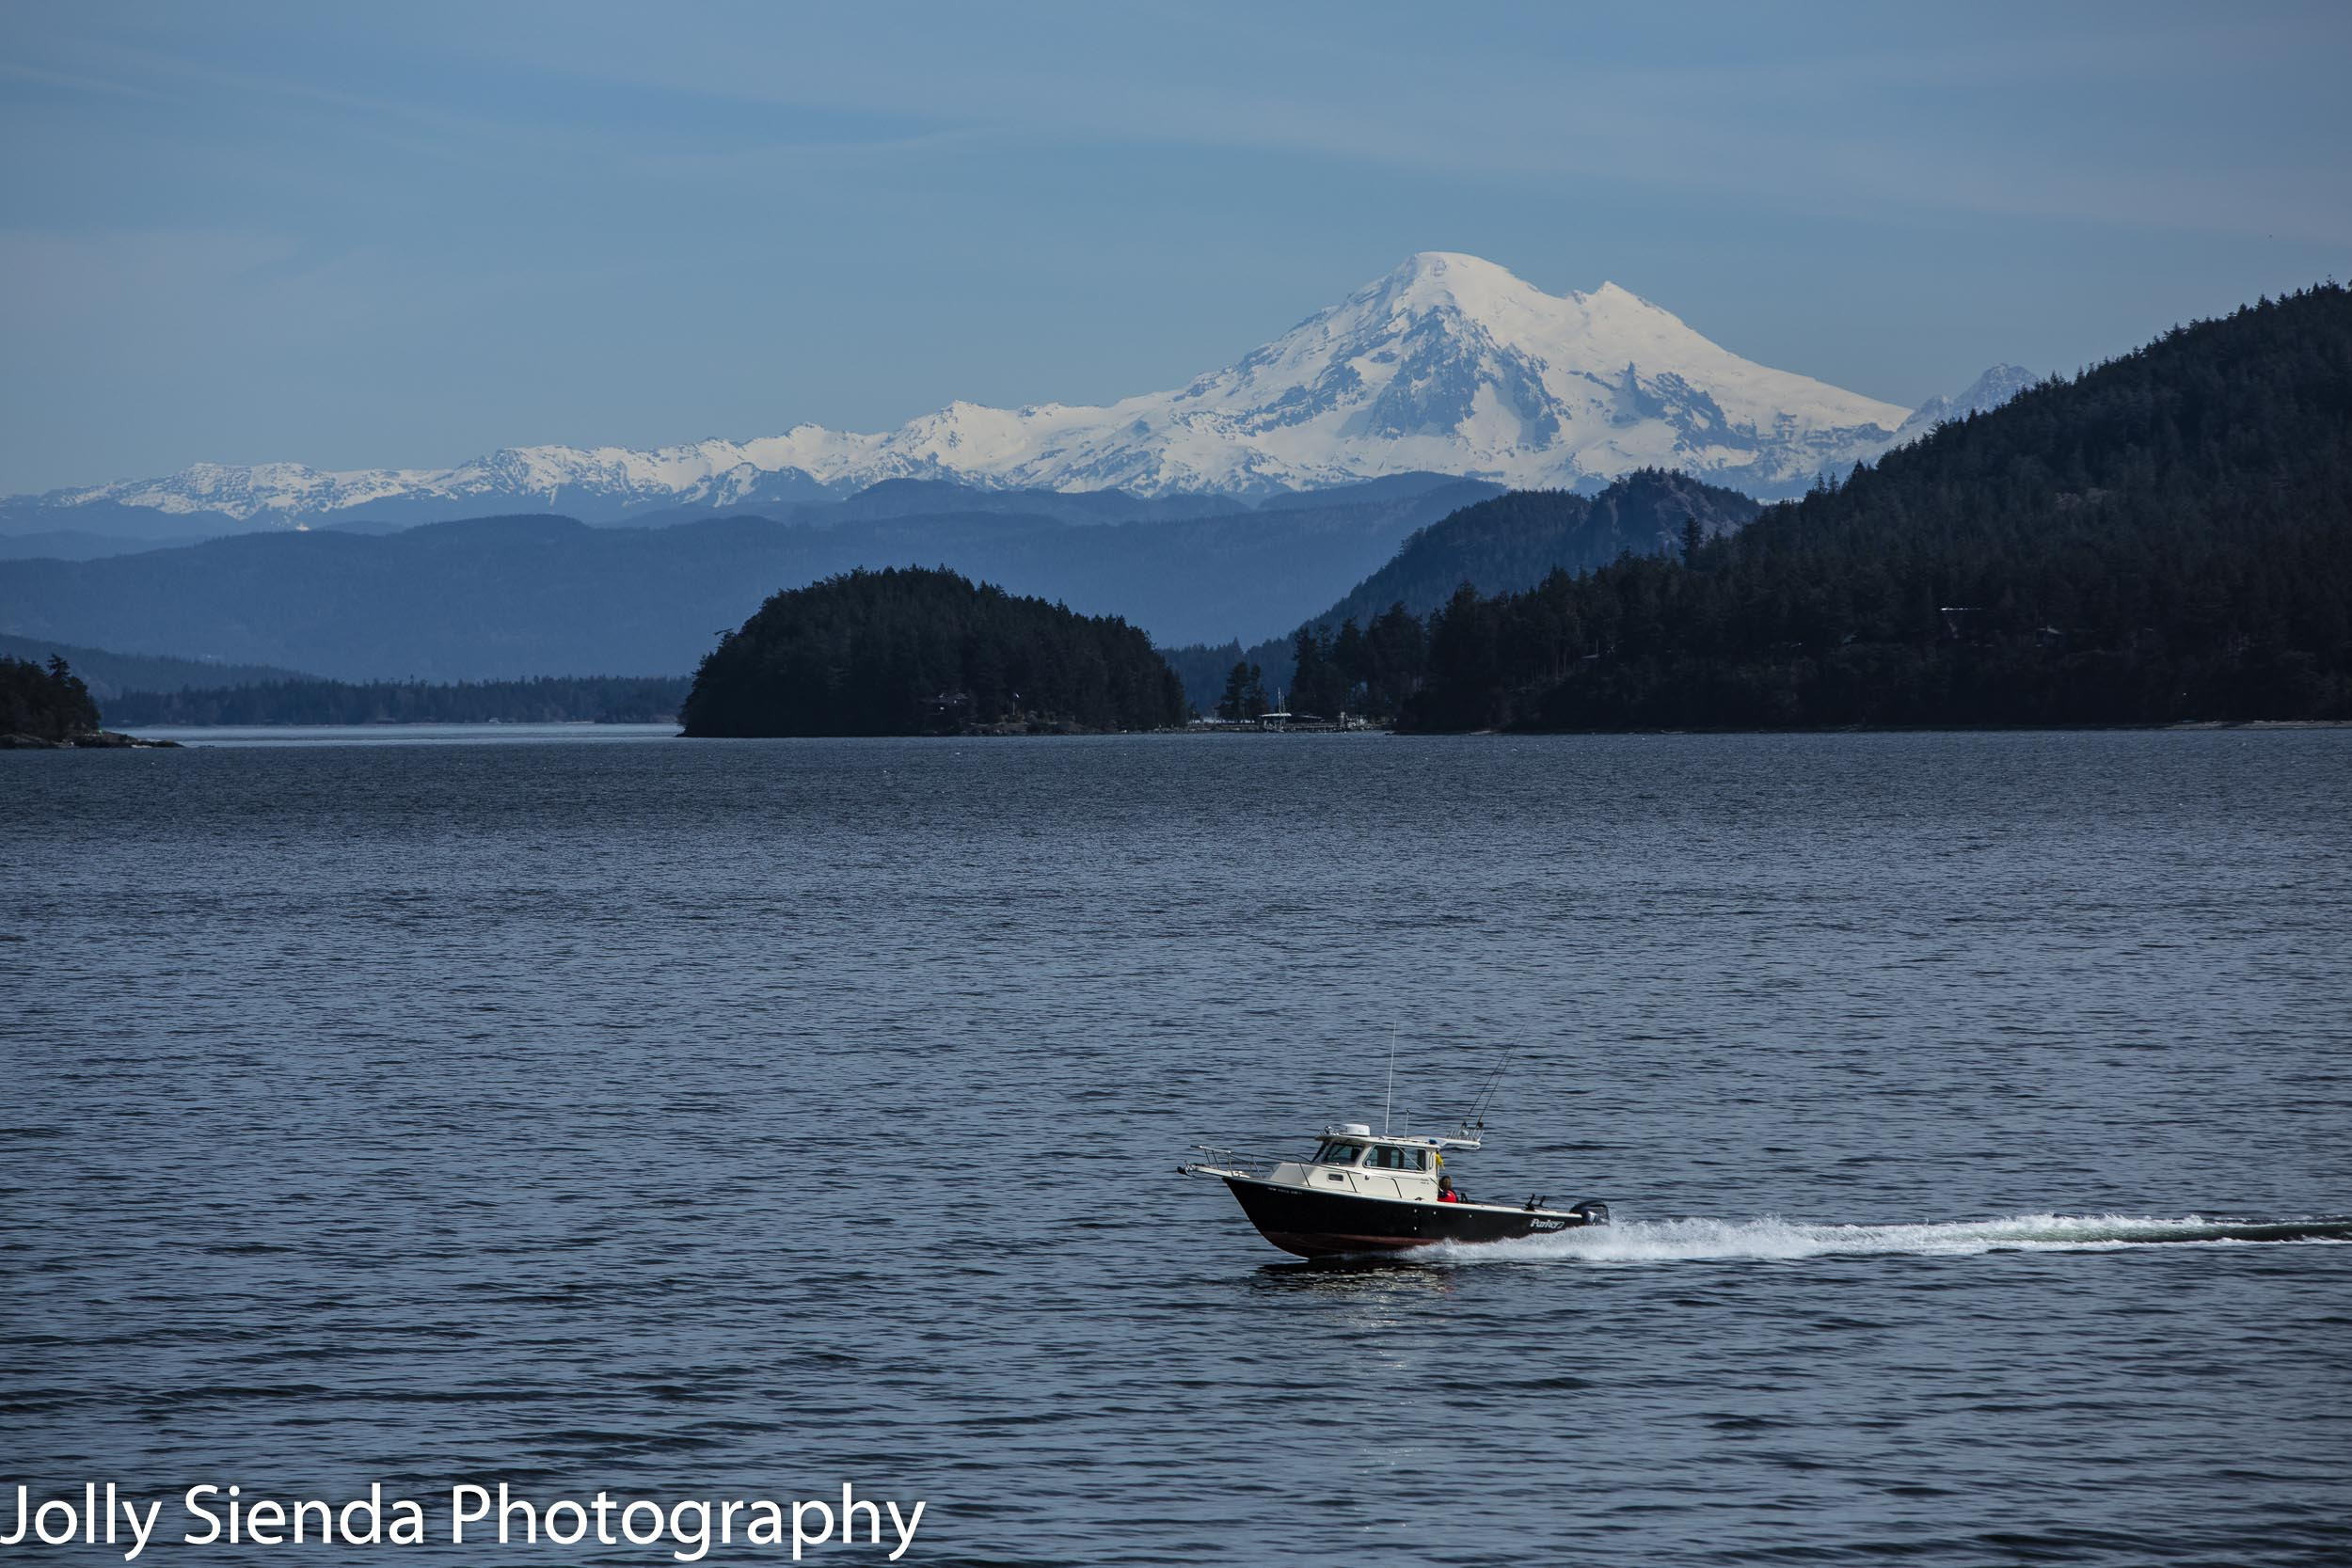 Speed boat cruises through the San Juan Island archipelago with Mount Baker in the background.